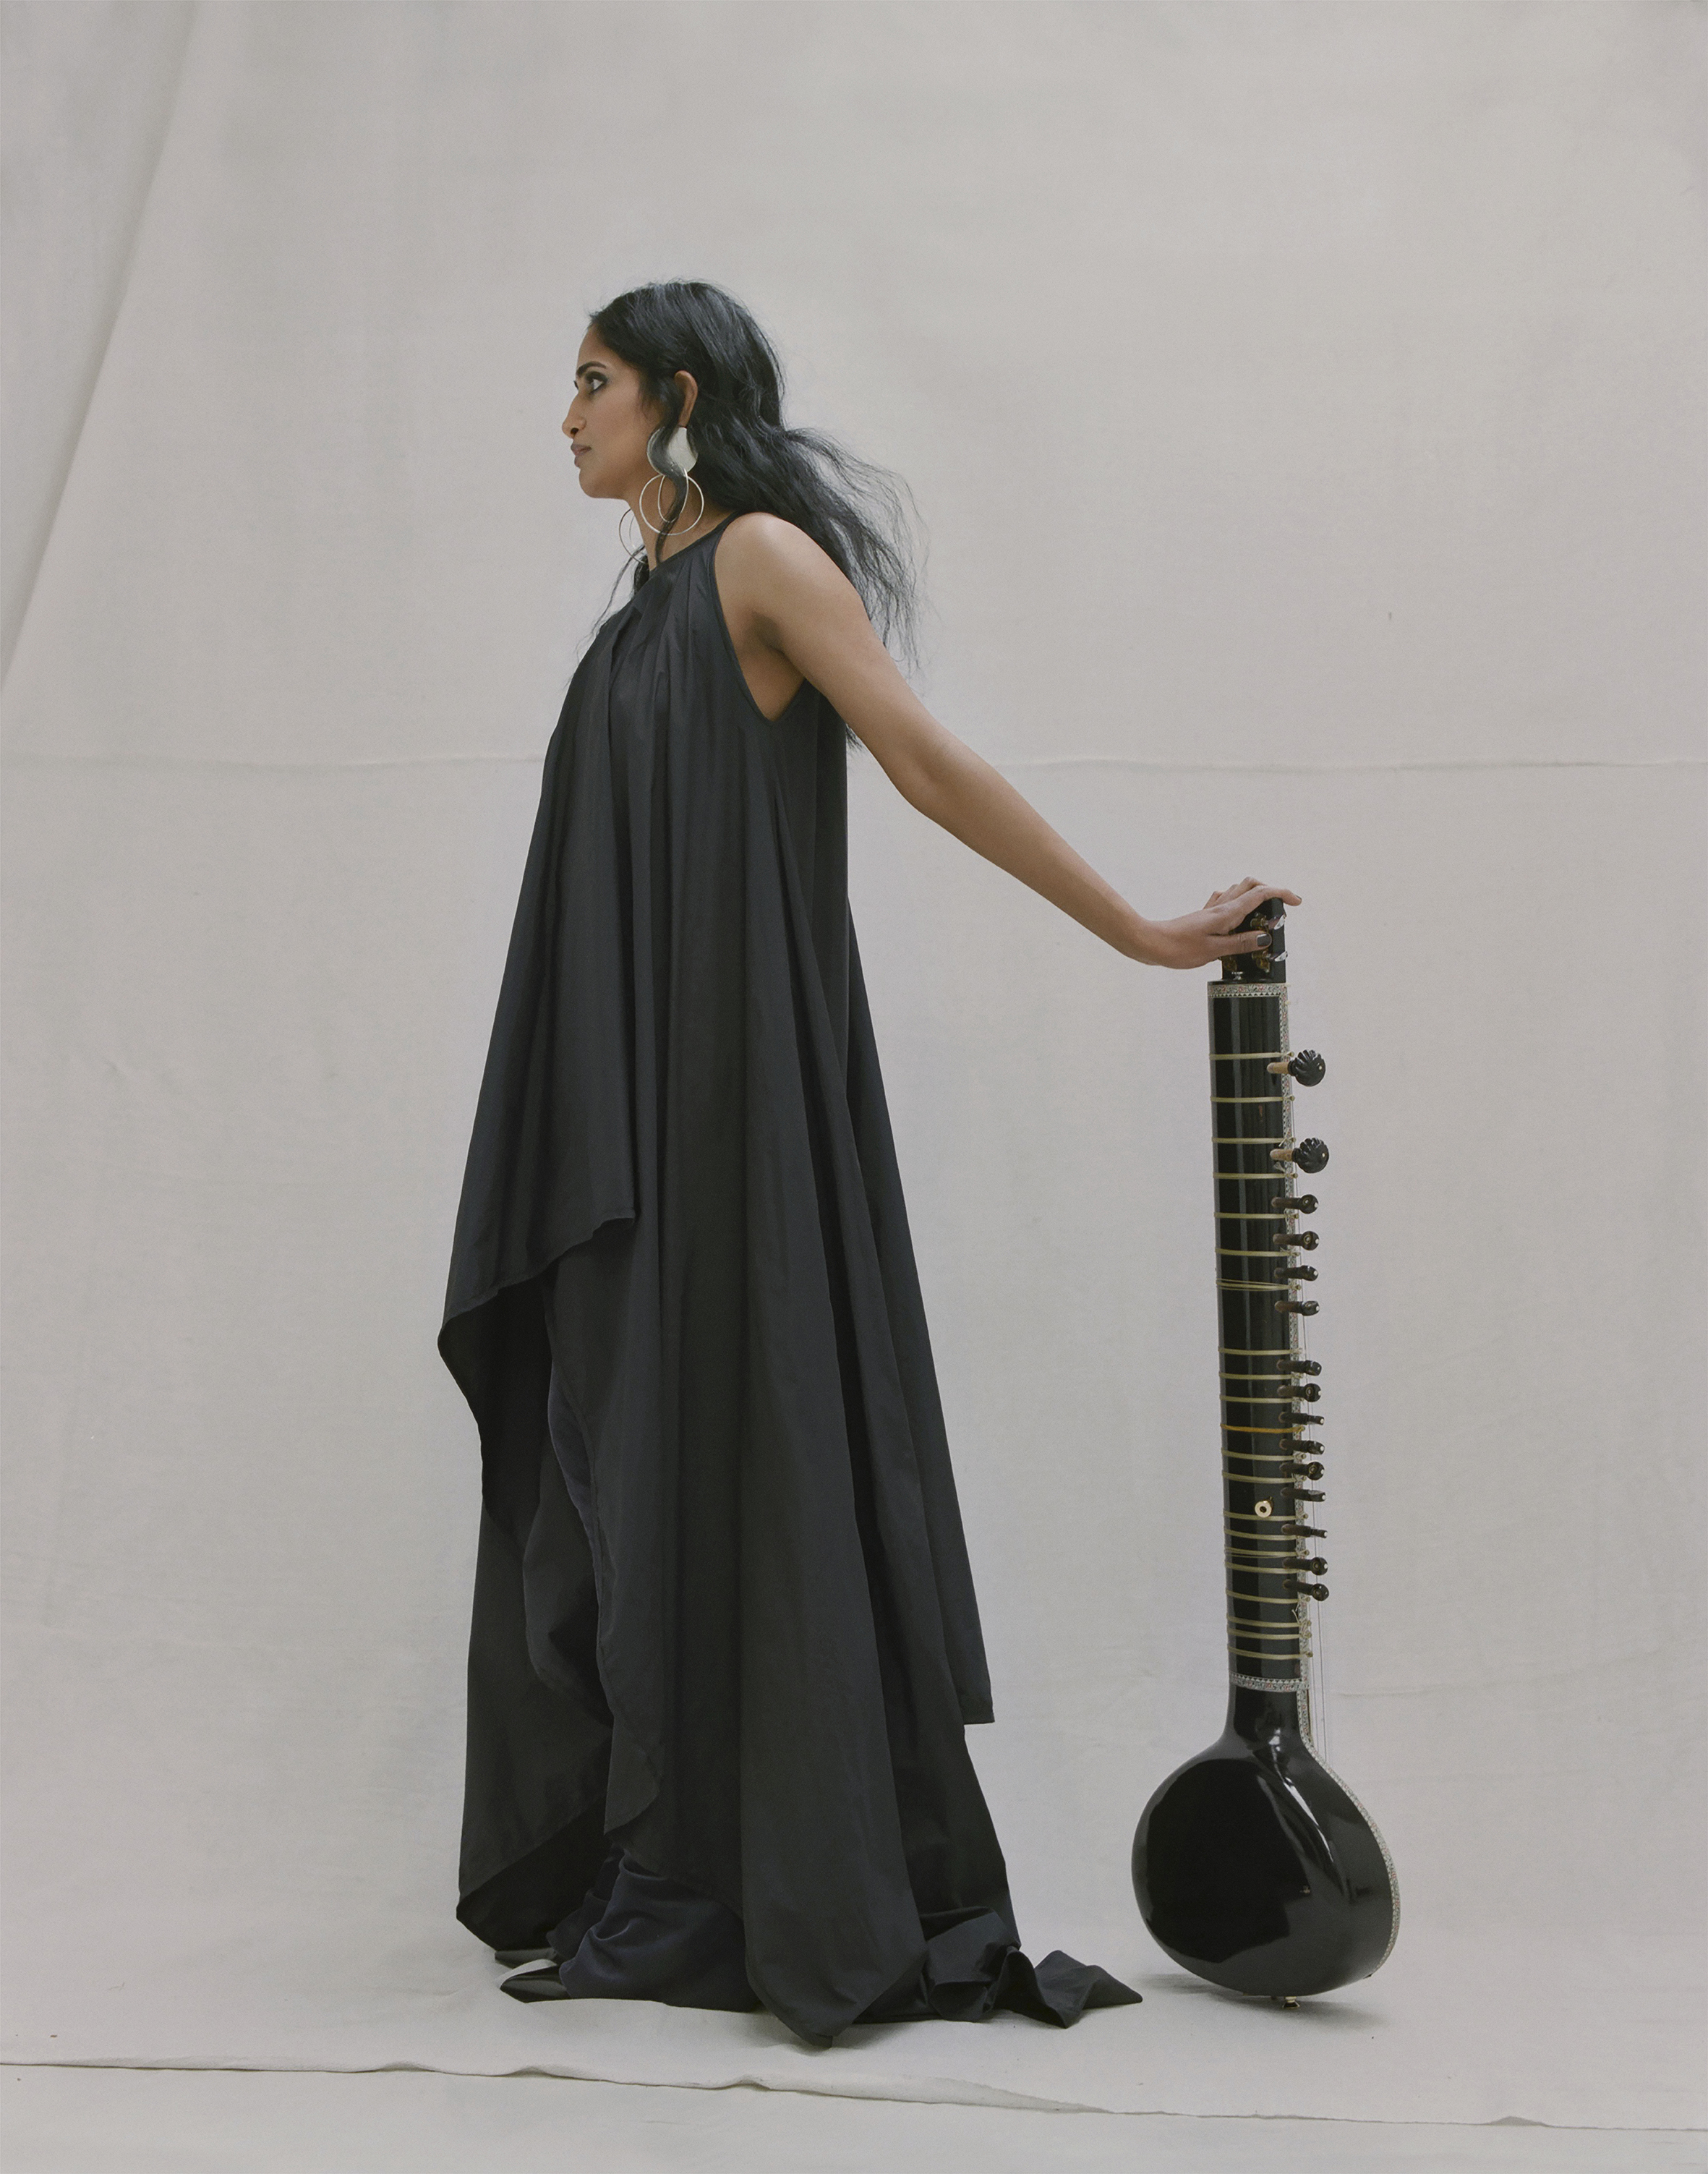 Asymmetrical long dress and trousers MICHAEL OLESTAD,black leather shoes PACO RABANNE,earrings ANNIE COSTELLO BROWN.